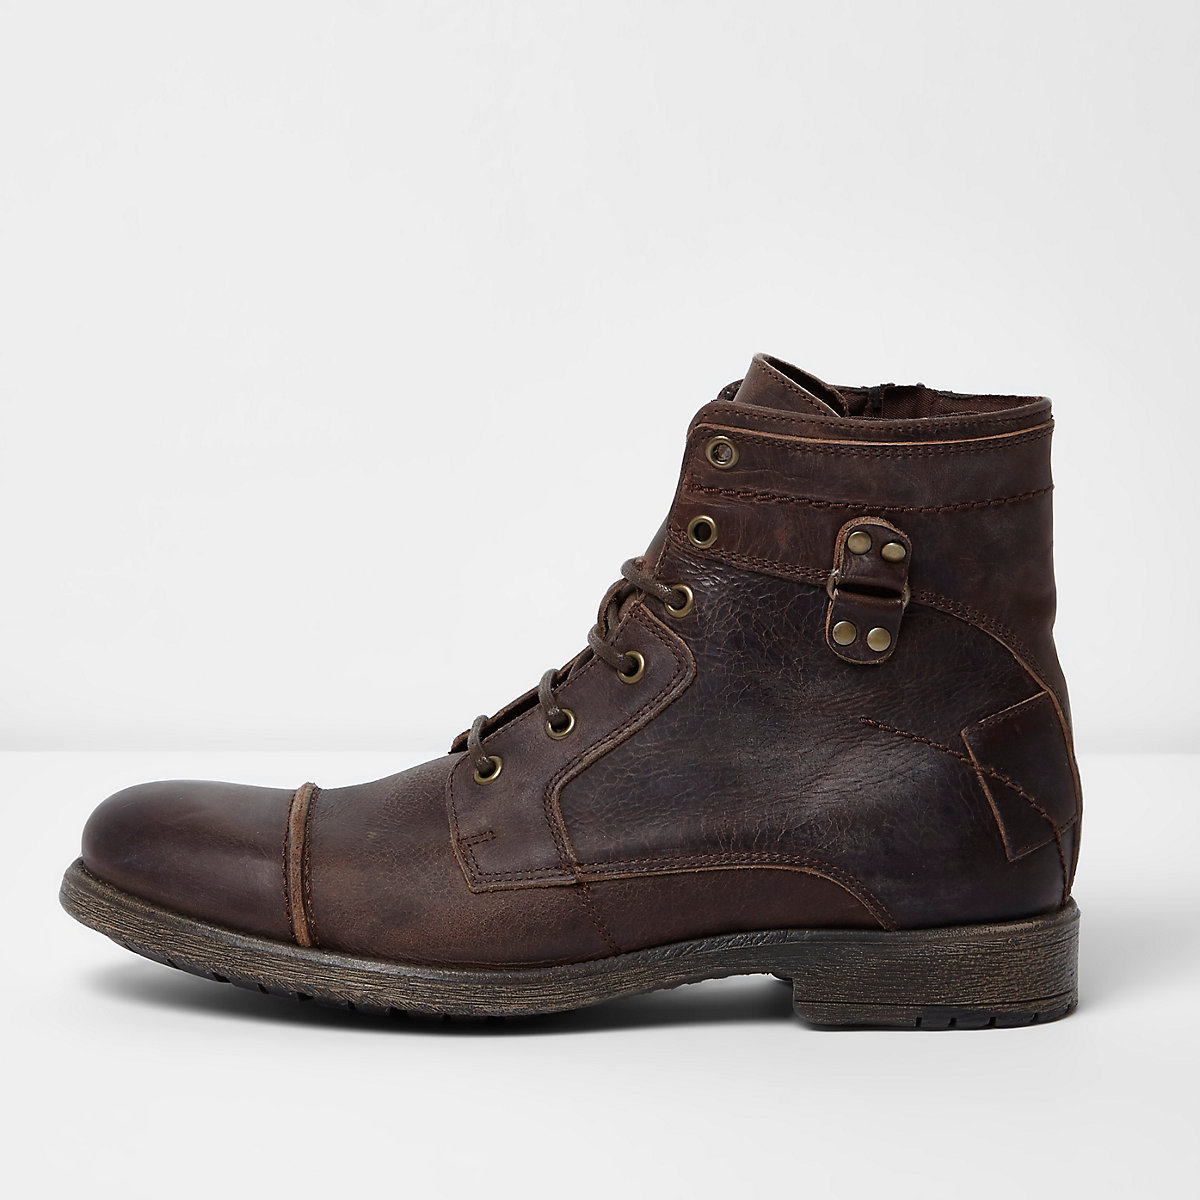 Dark brown leather lace-up military boots